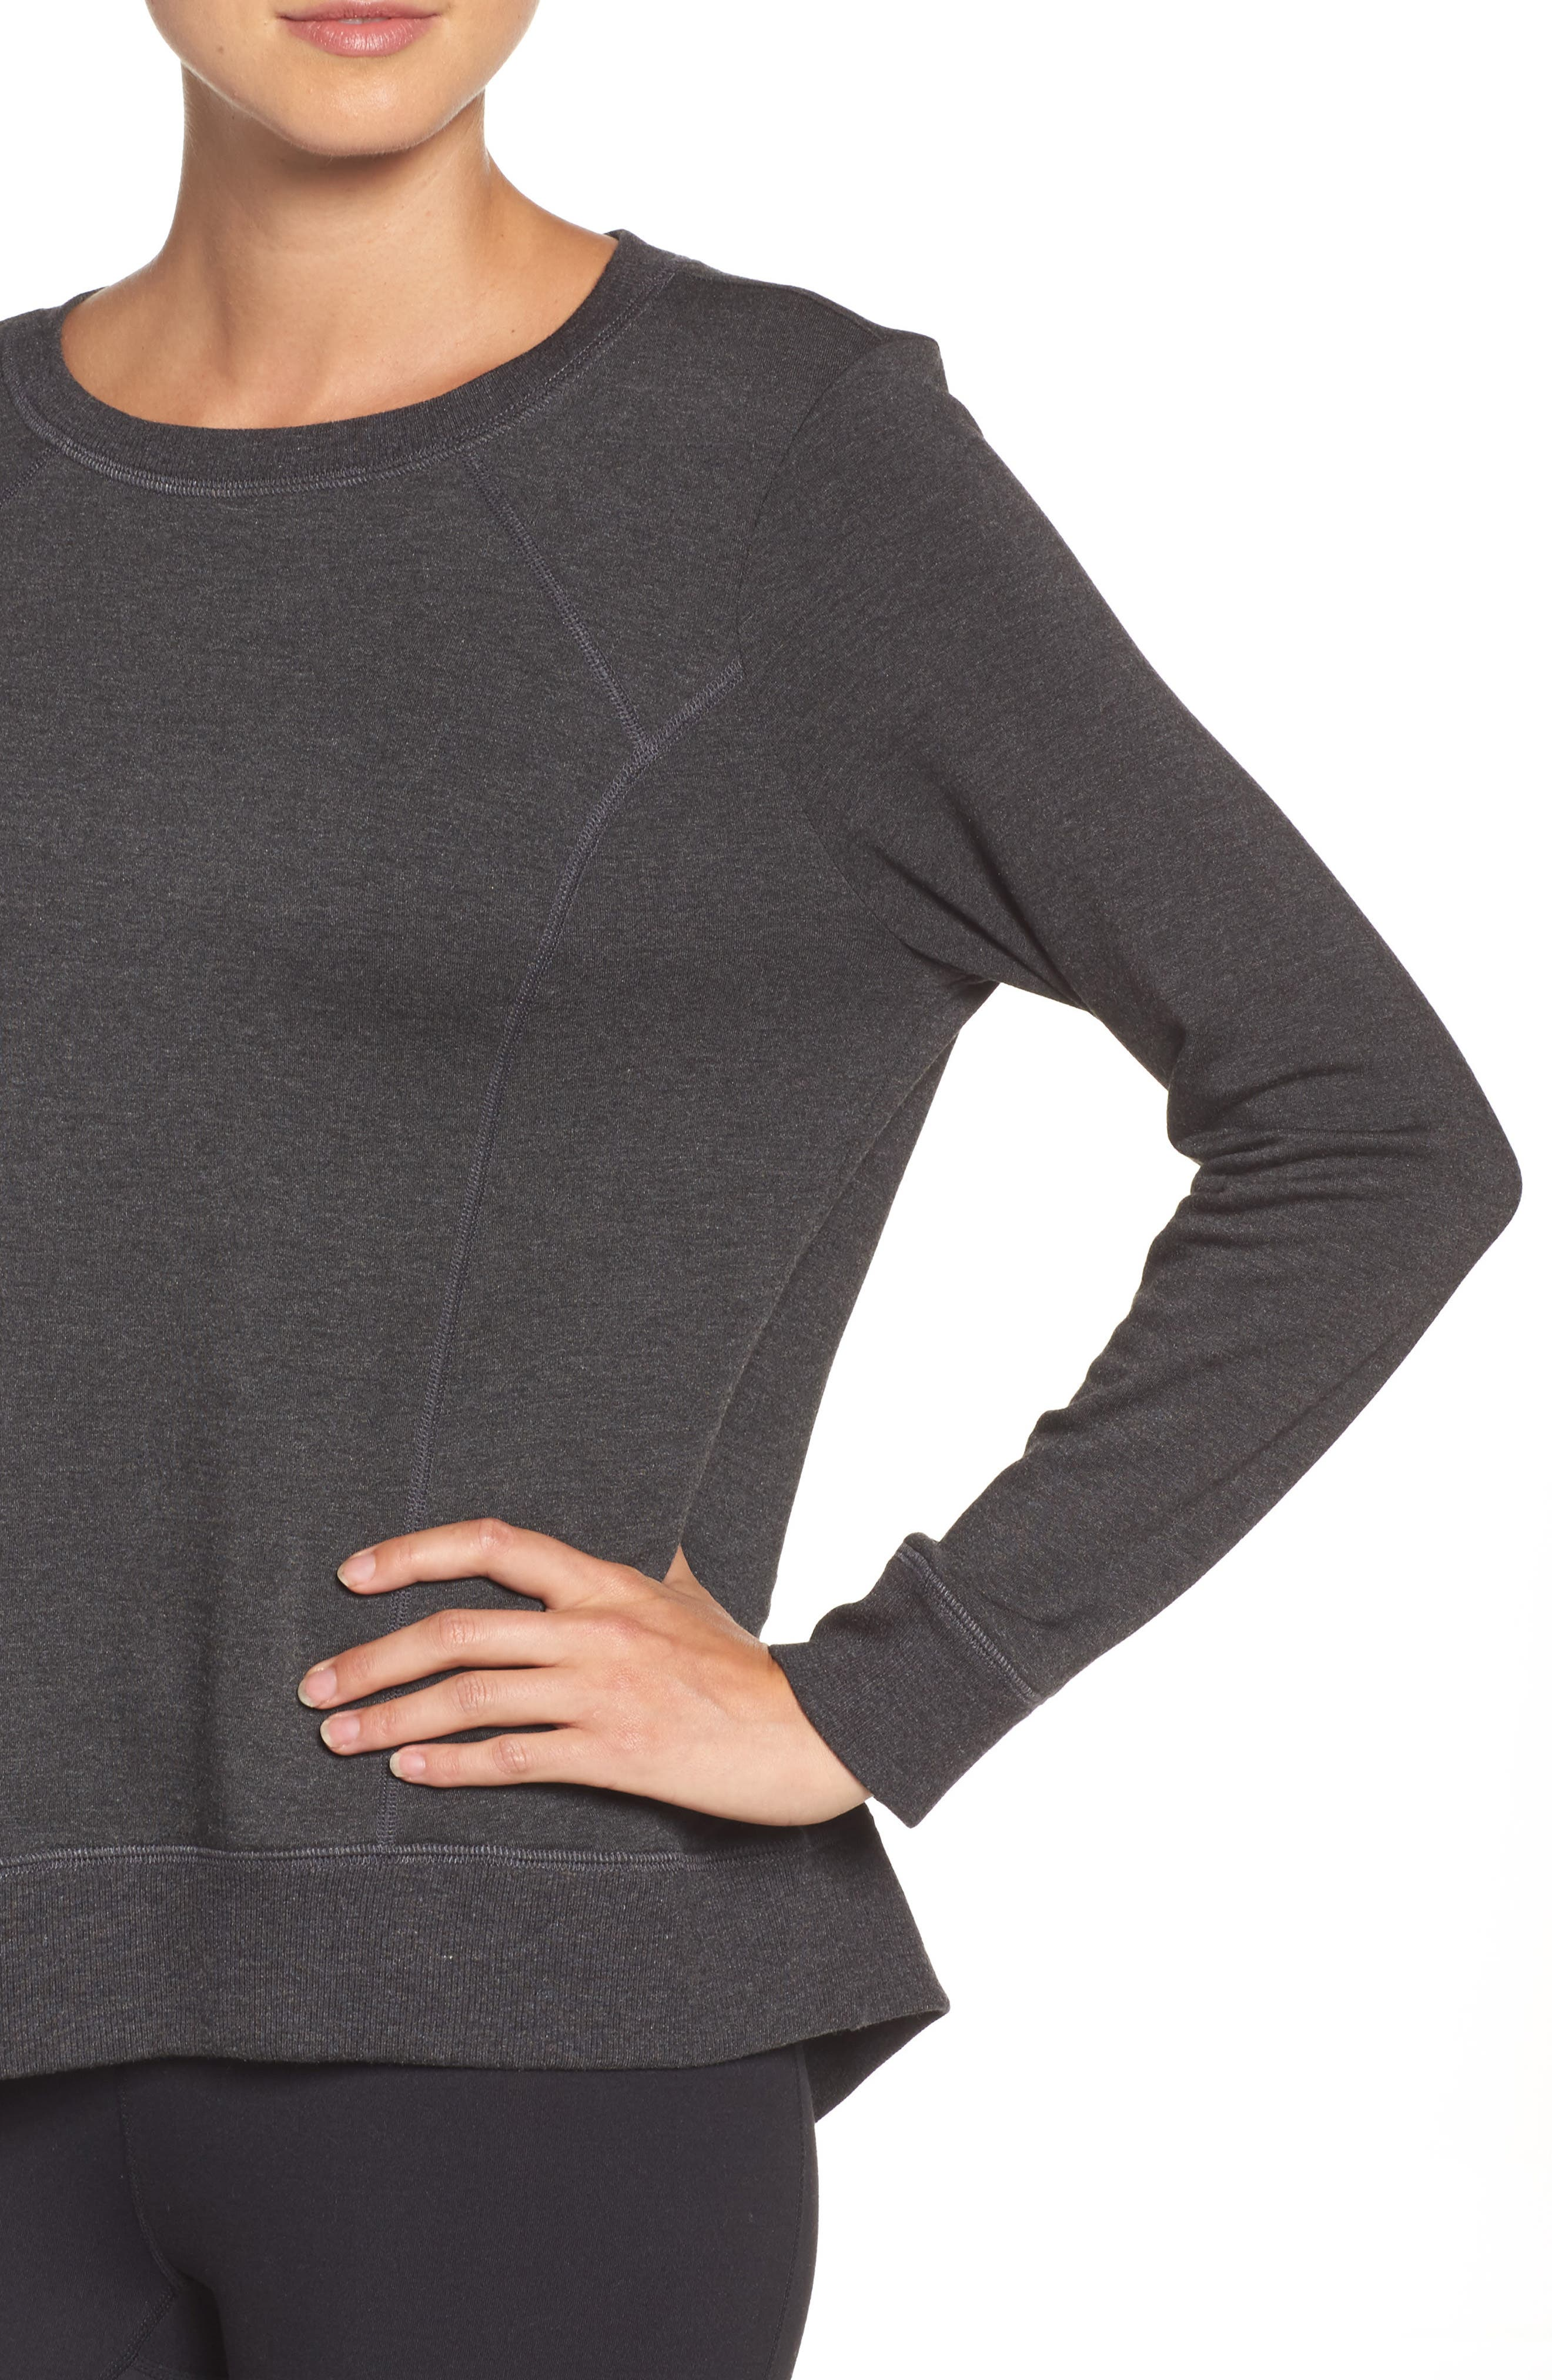 Fleece Pullover,                             Alternate thumbnail 4, color,                             Charcoal Heather Gray